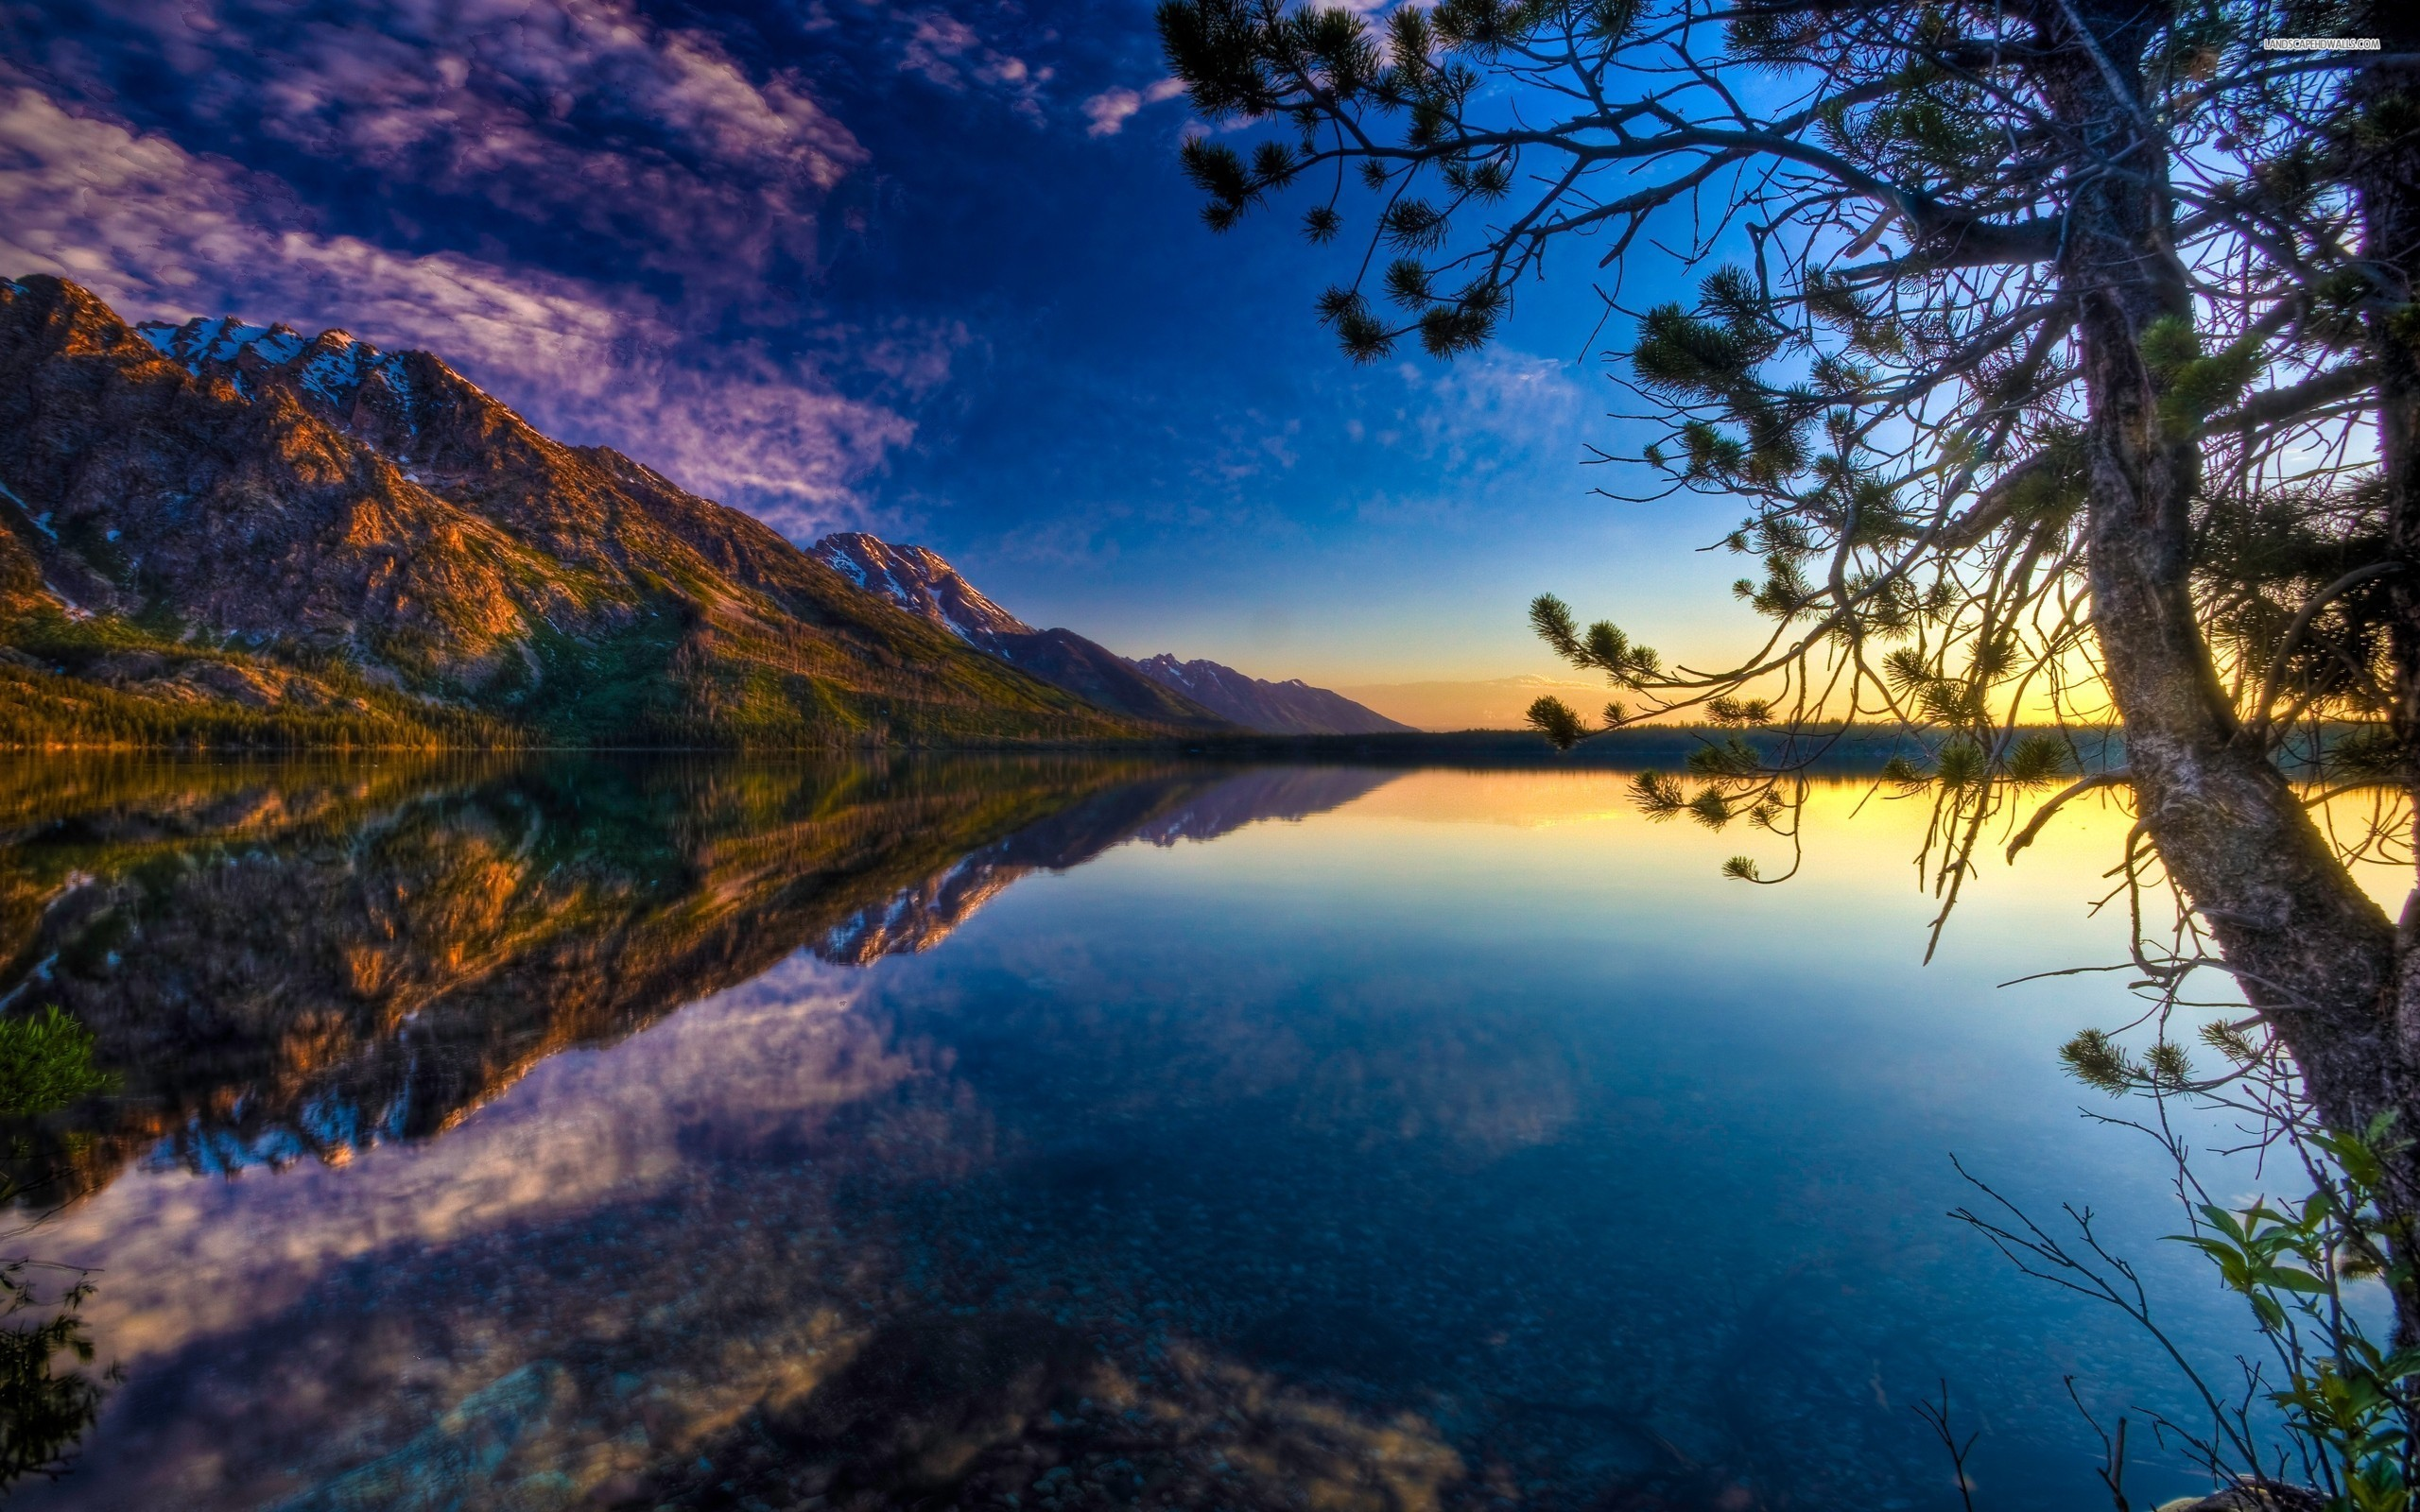 Mountainside Lake wallpaper 2560x1600 Original ...